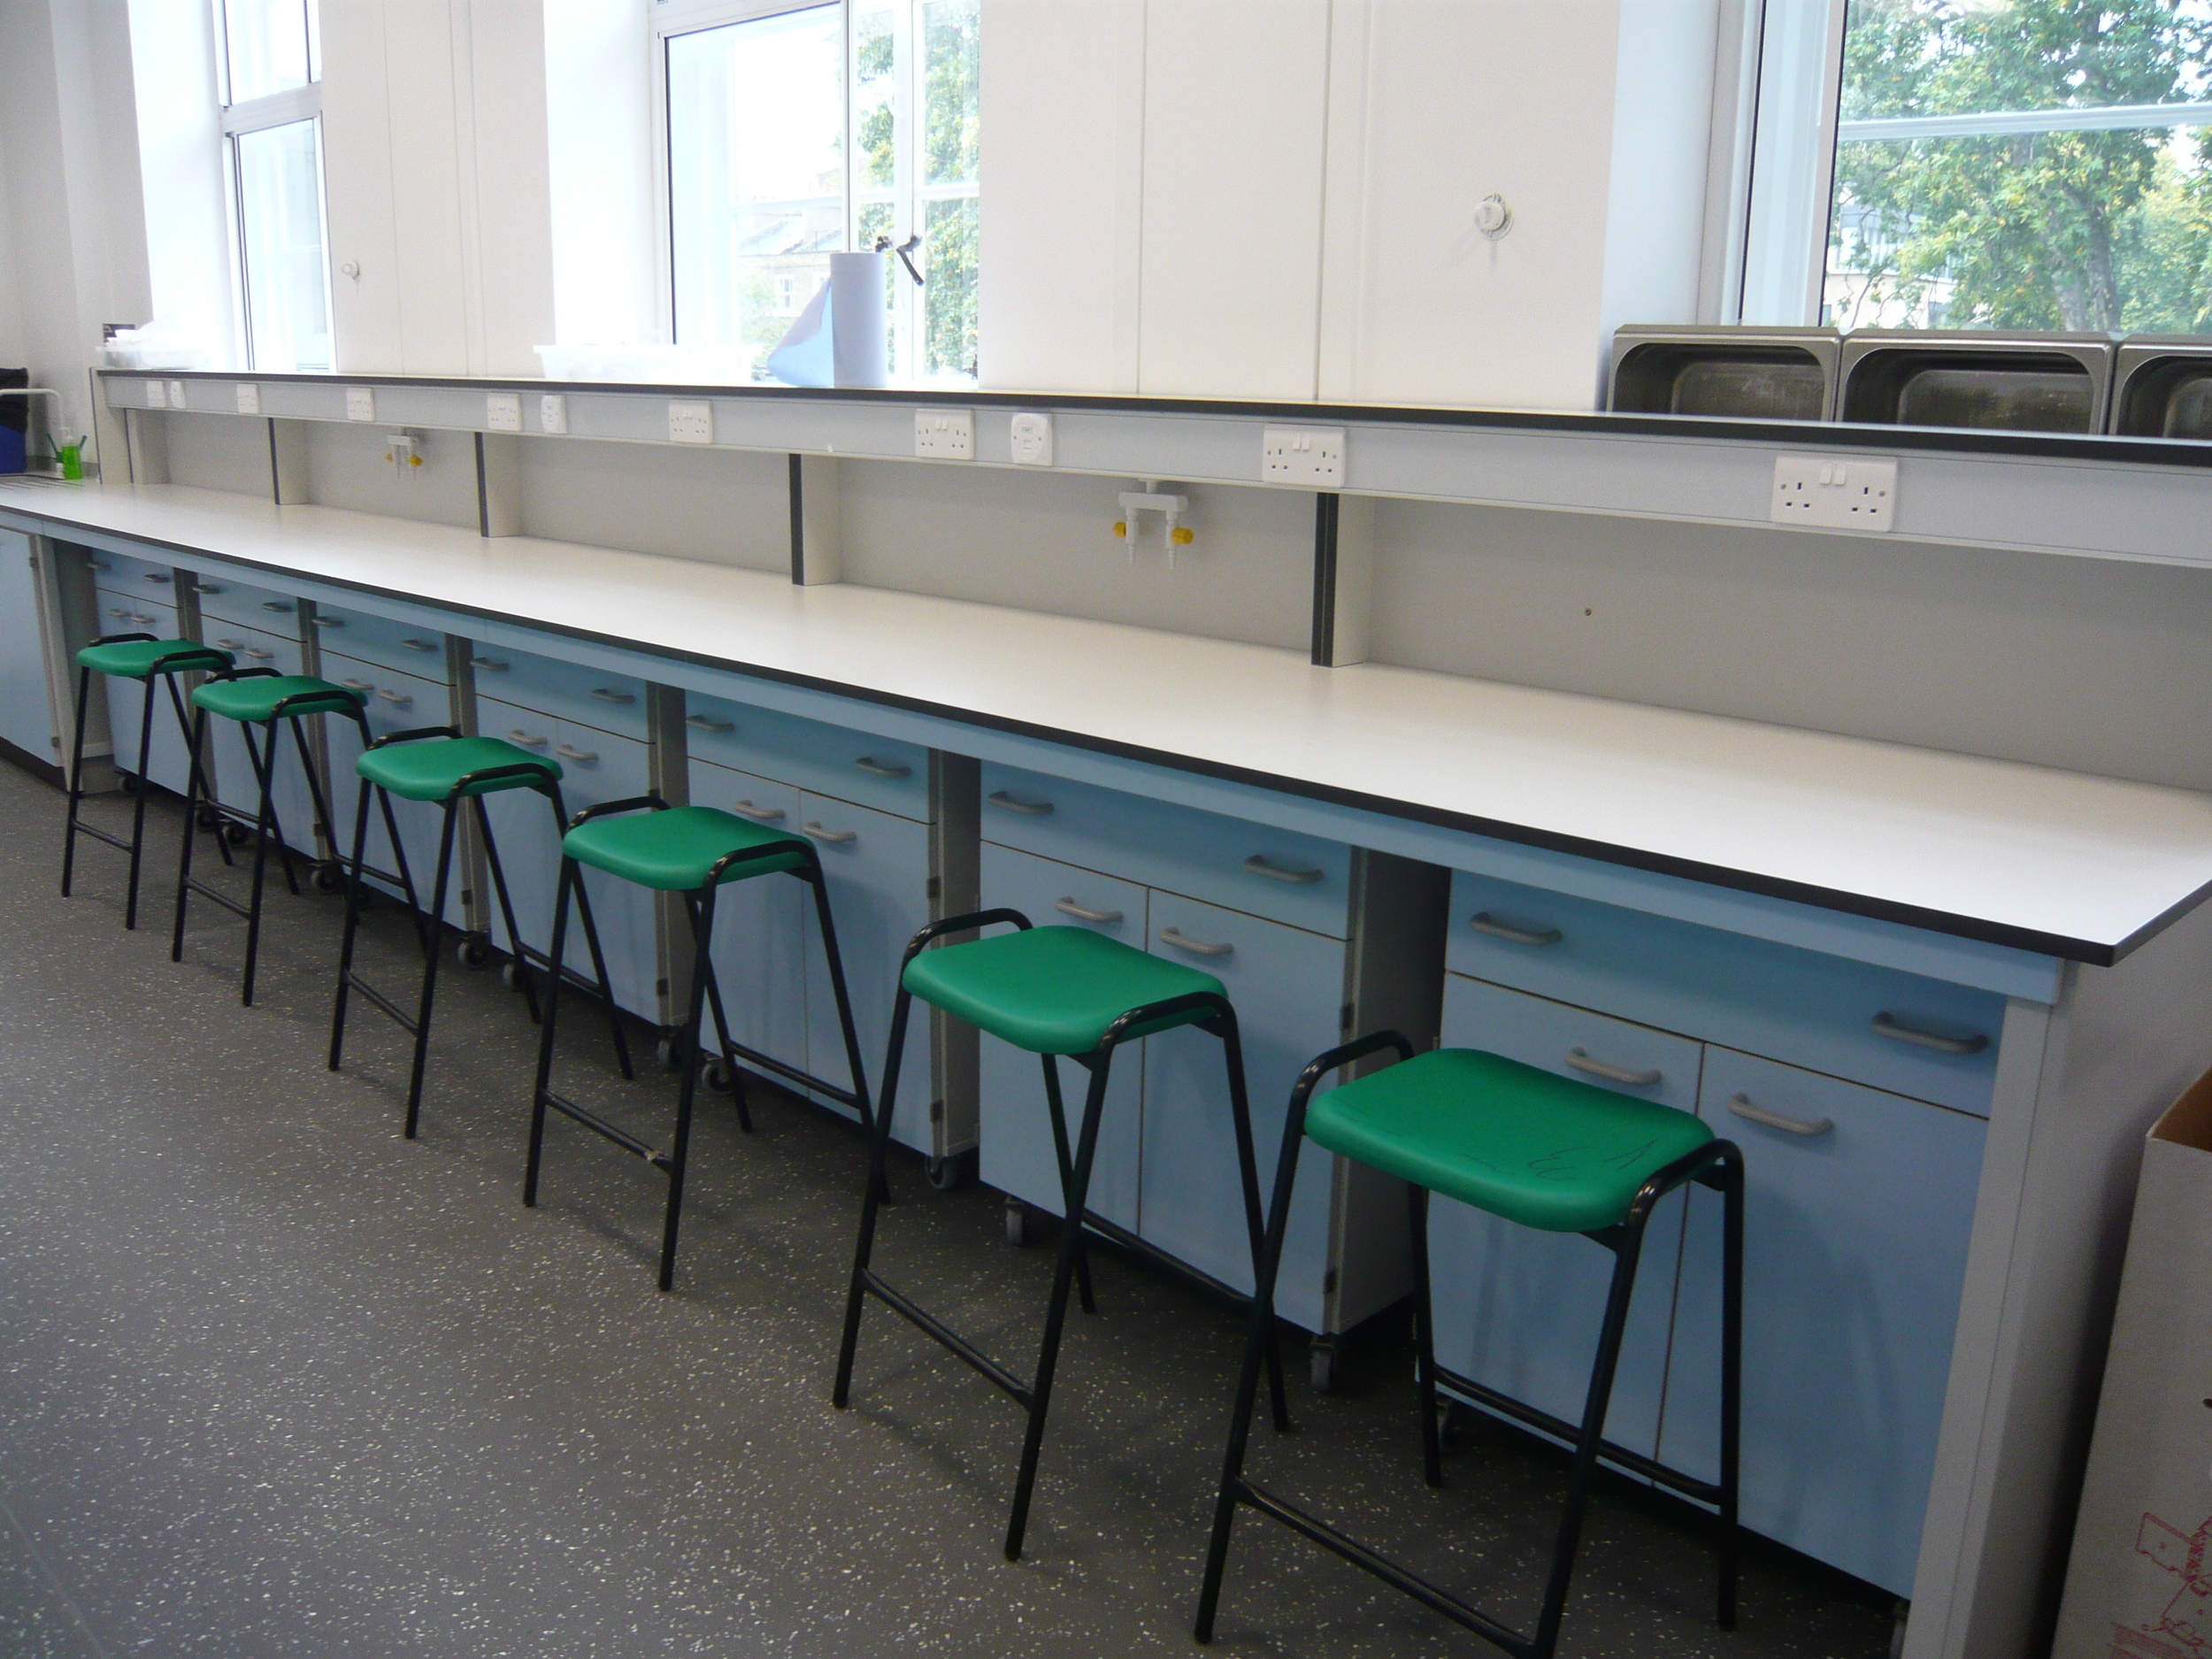 AJT Laboratory Furniture Design Trespa Toplab School Furniture School refurb Associated Joinery Techniques